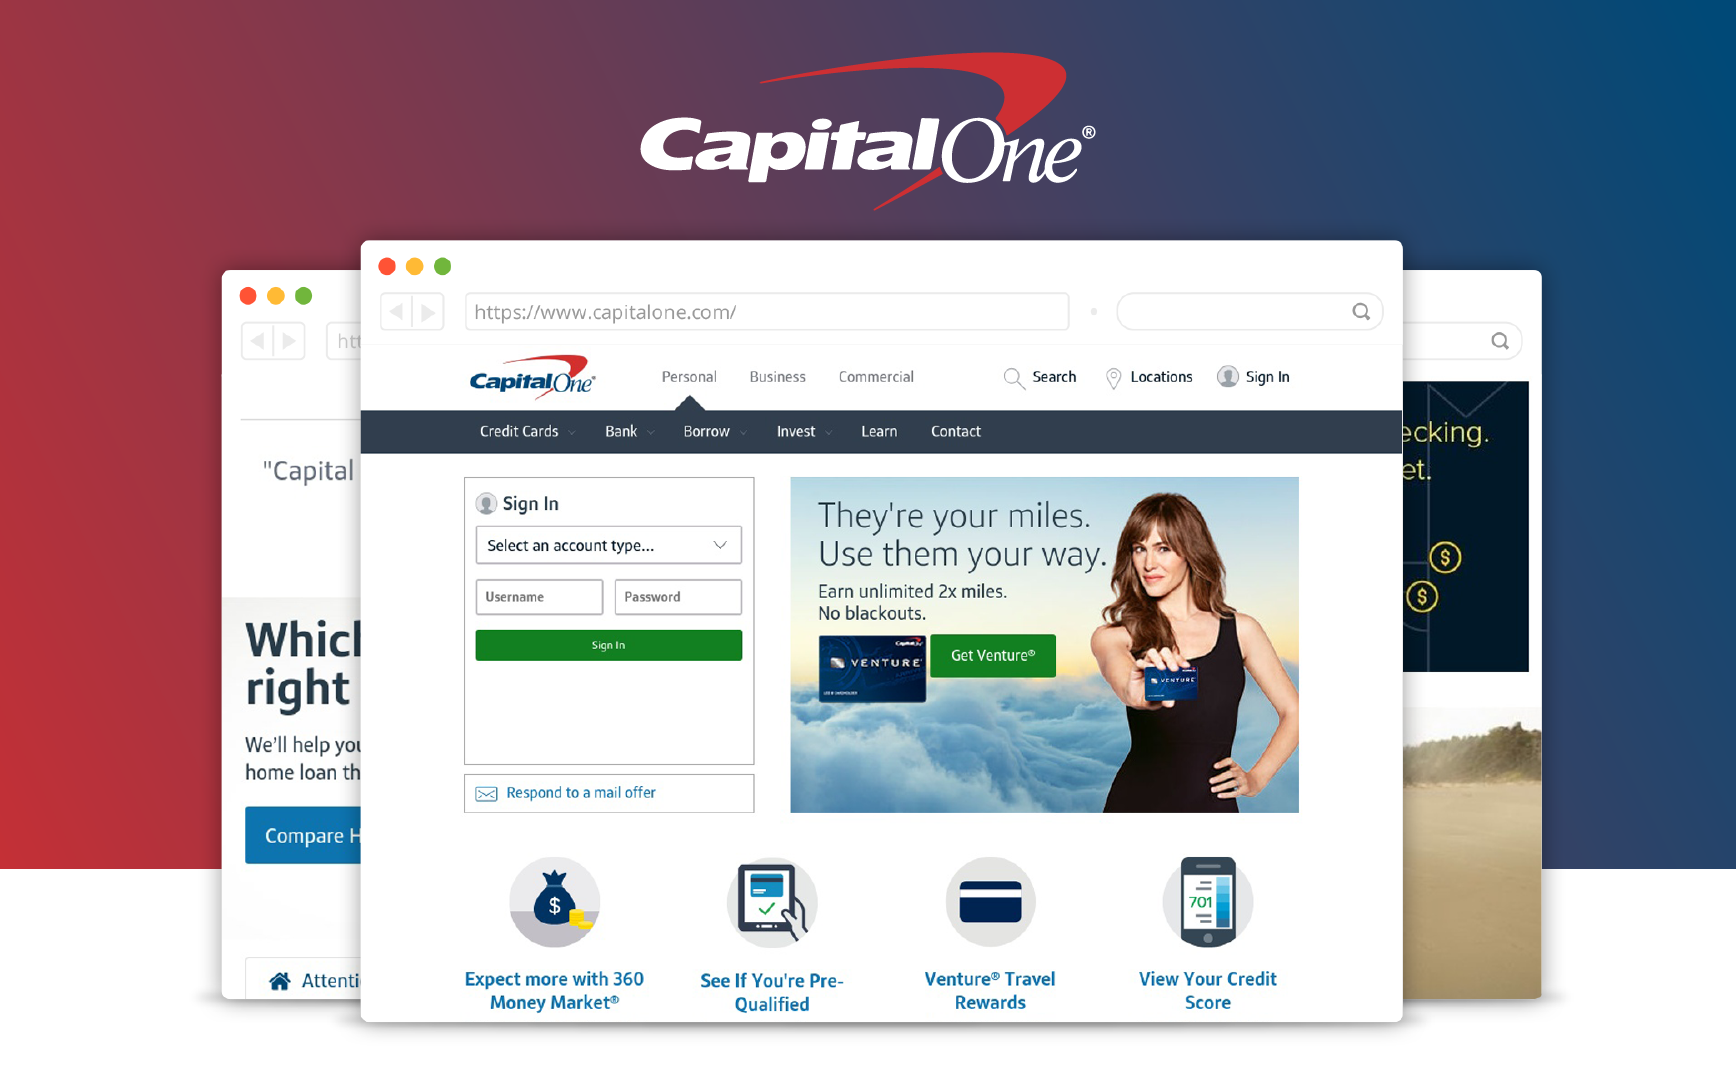 Capital One Auto Loan Payment >> Capital One Bank Review - CreditLoan.com®